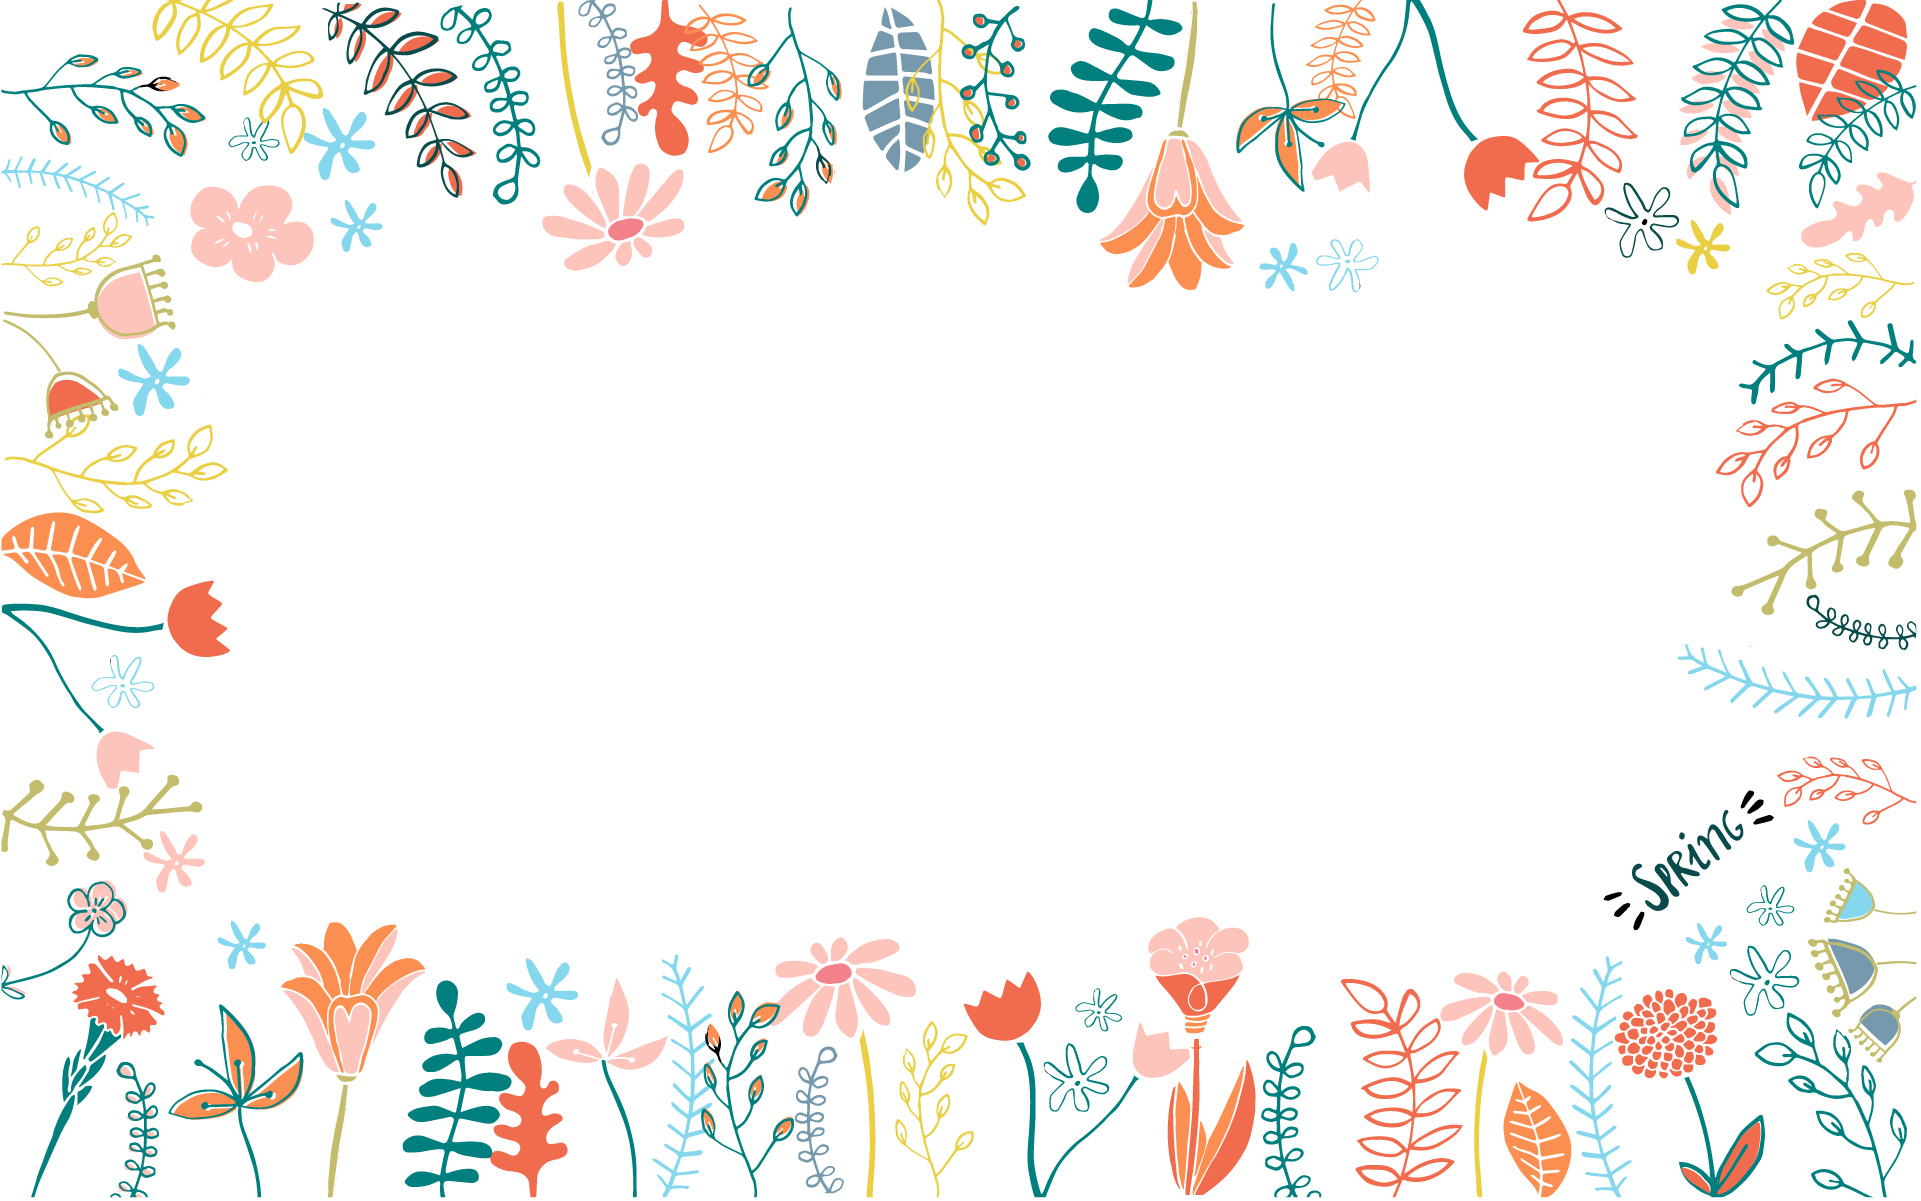 FREE Floral Wallpaper For Your Desktop